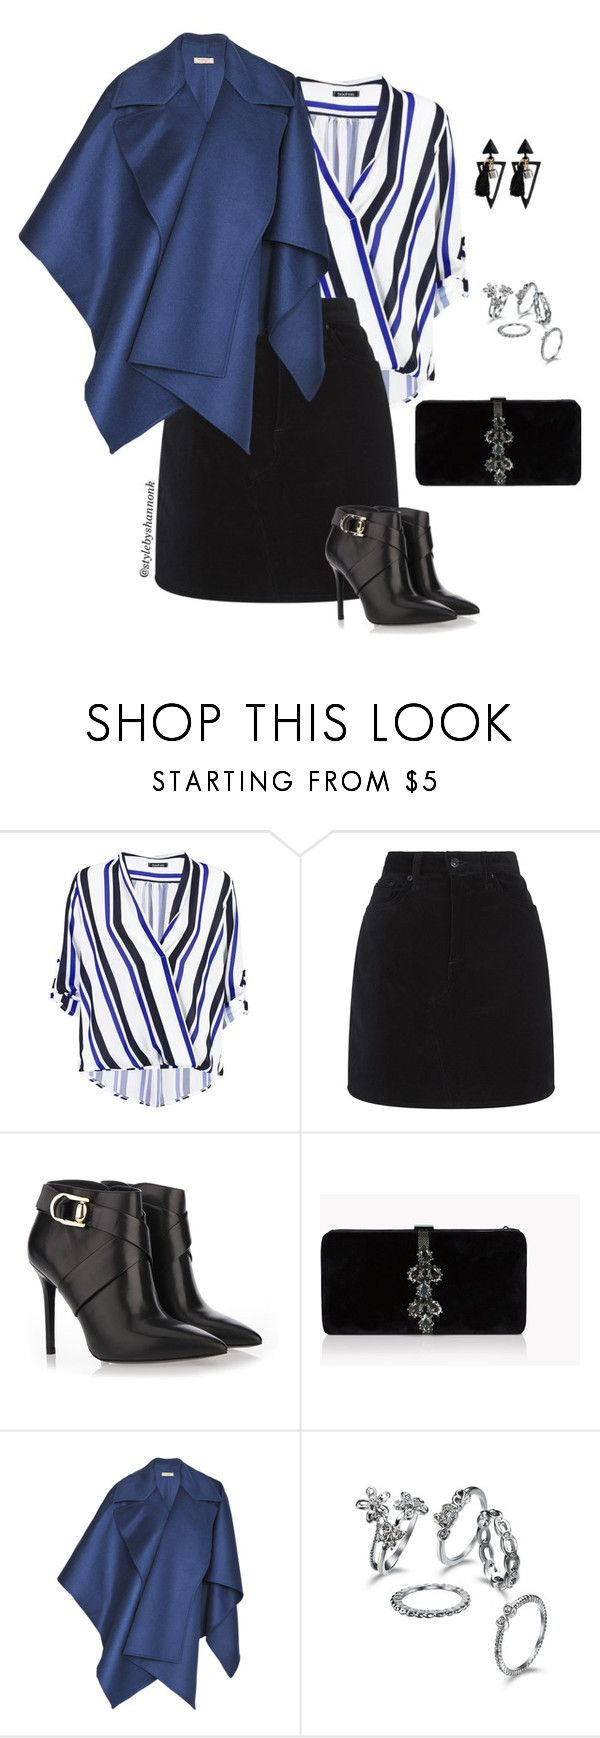 """""""Be Bold"""" by stylebyshannonk on Polyvore featuring Boohoo, rag & bone, Stella Luna, Dsquared2 and Burberry"""